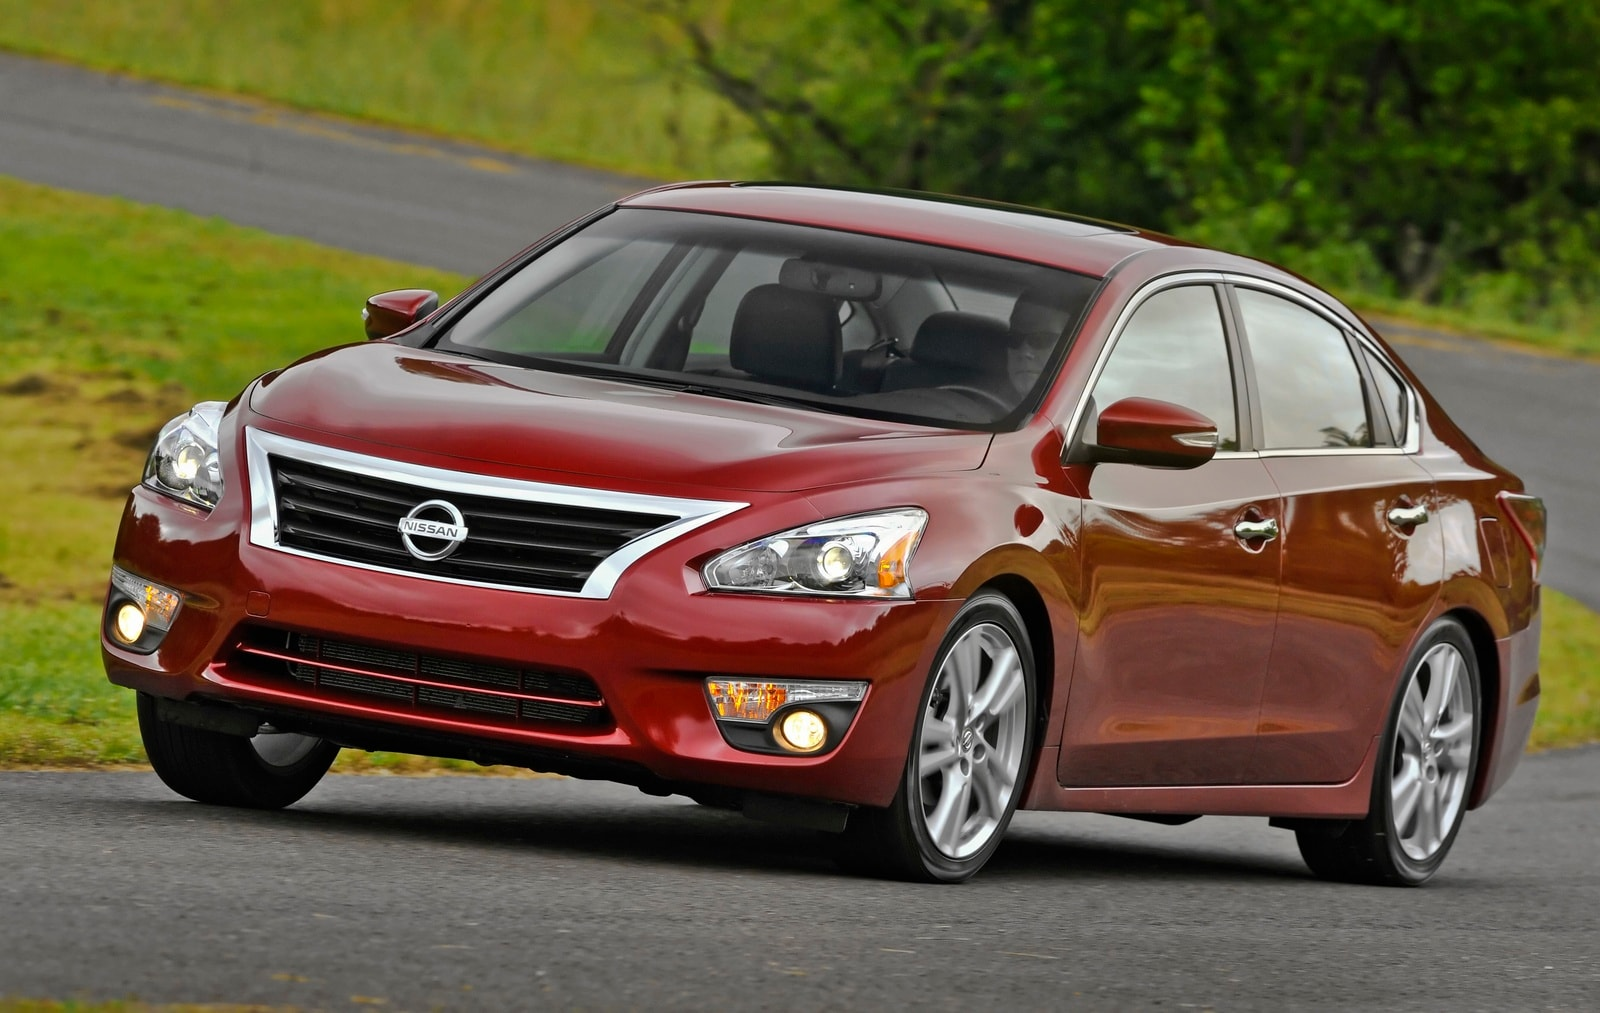 Midway Nissan Kelley Blue Book Names 2014 Nissan Altima One Of